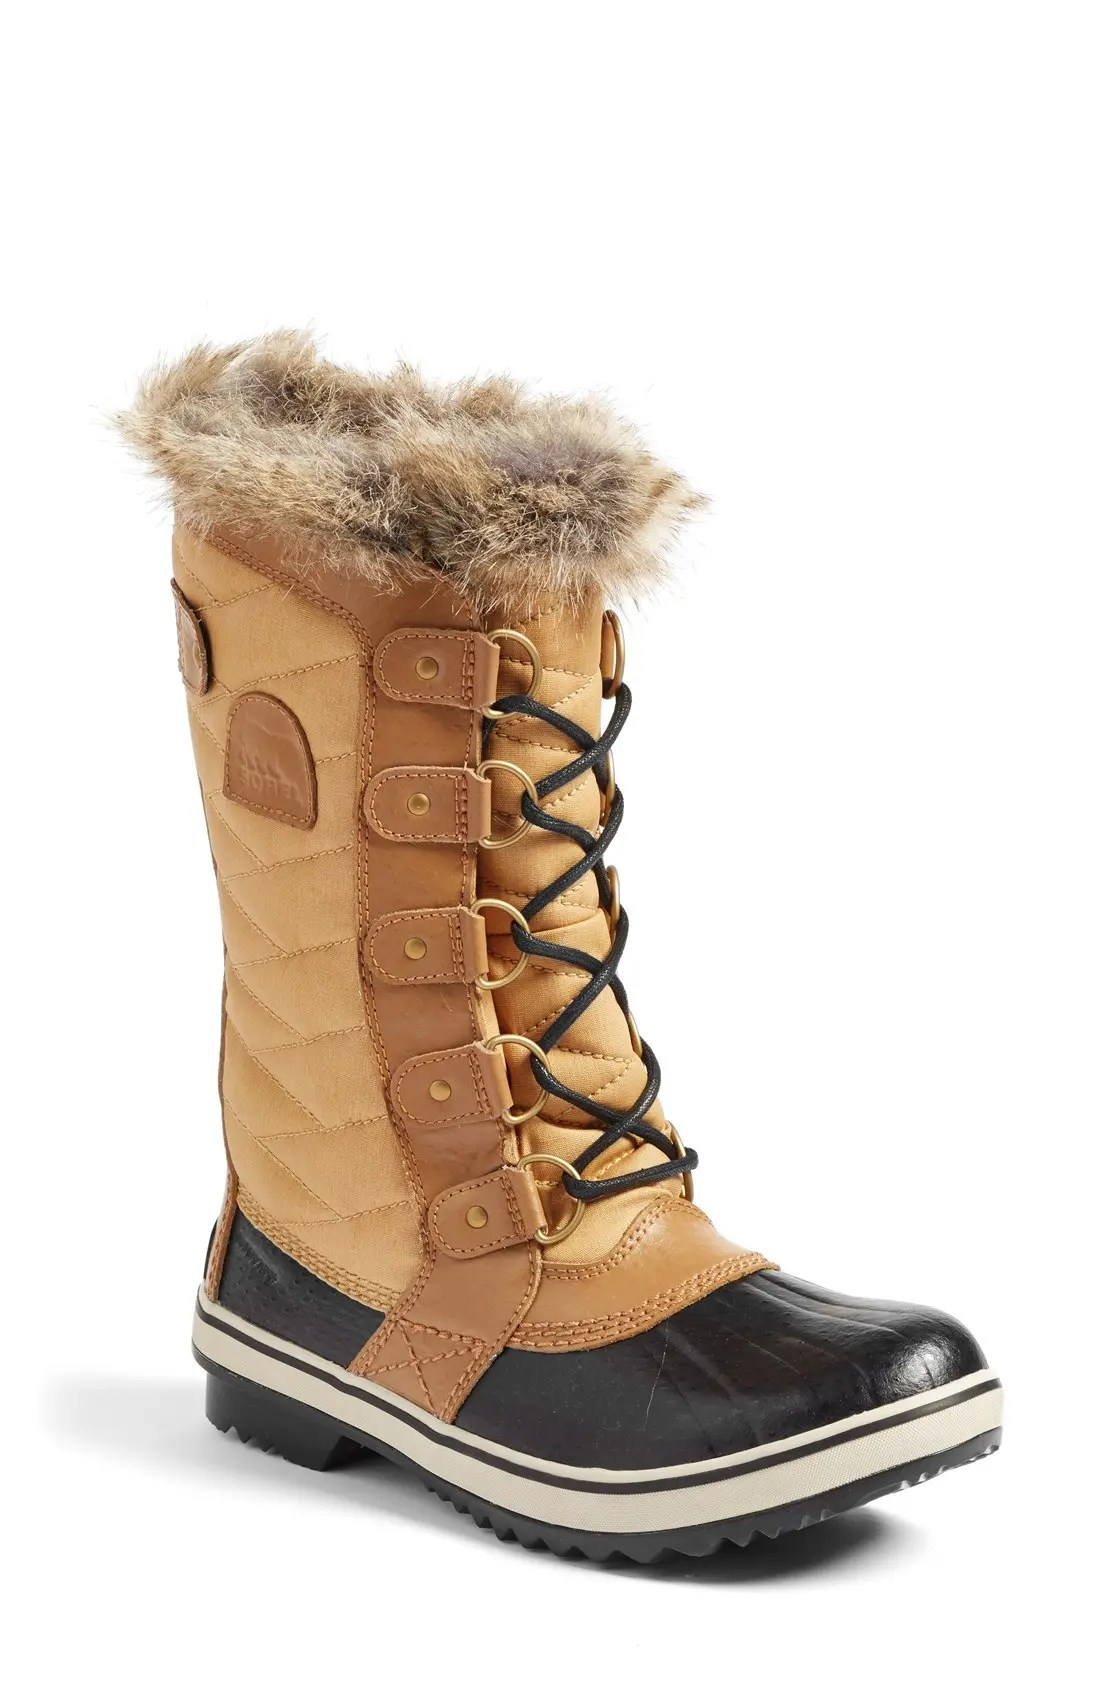 SOREL 'Tofino II' Faux Fur Lined Waterproof Boot, Main, color, CURRY